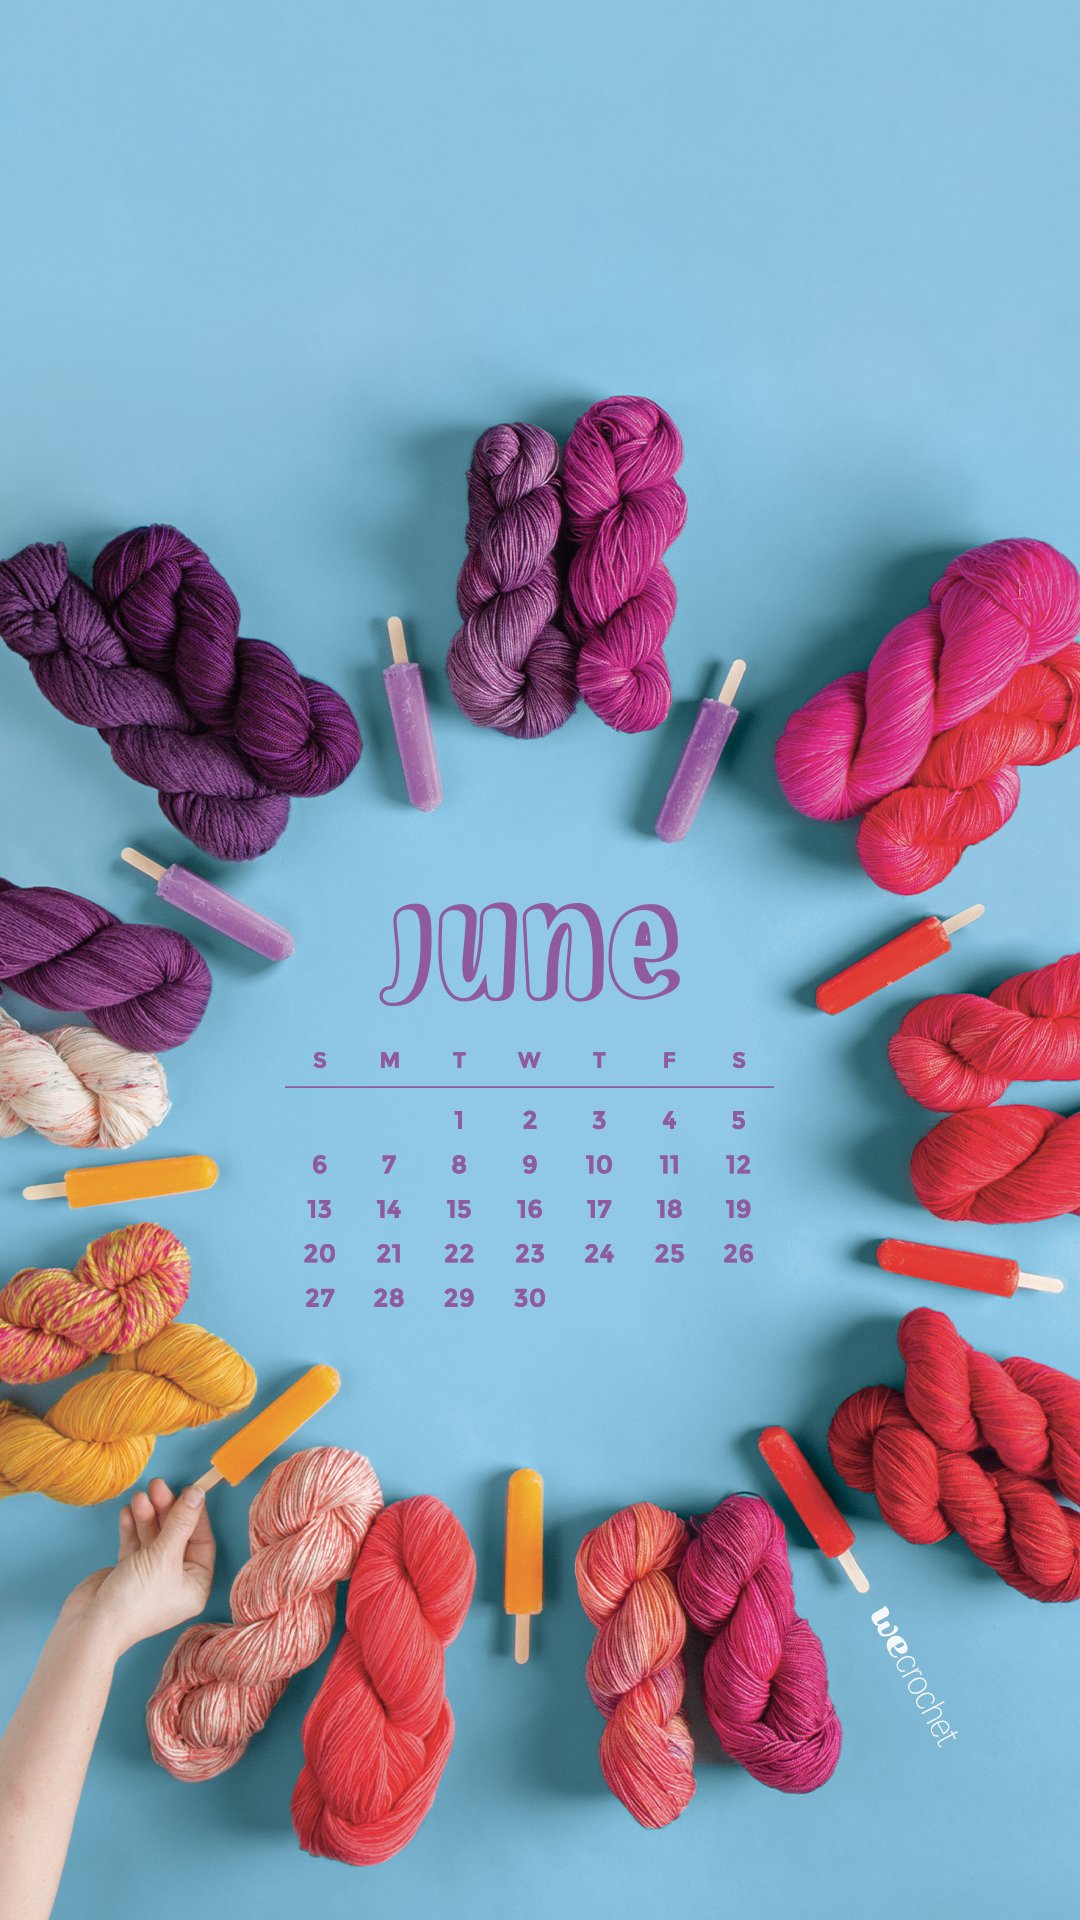 On a blue background, a ring of colorful yarn ranging from purple to pink to red to orange along with matching popsicles. A June 2021 calendar in the center of the circle.